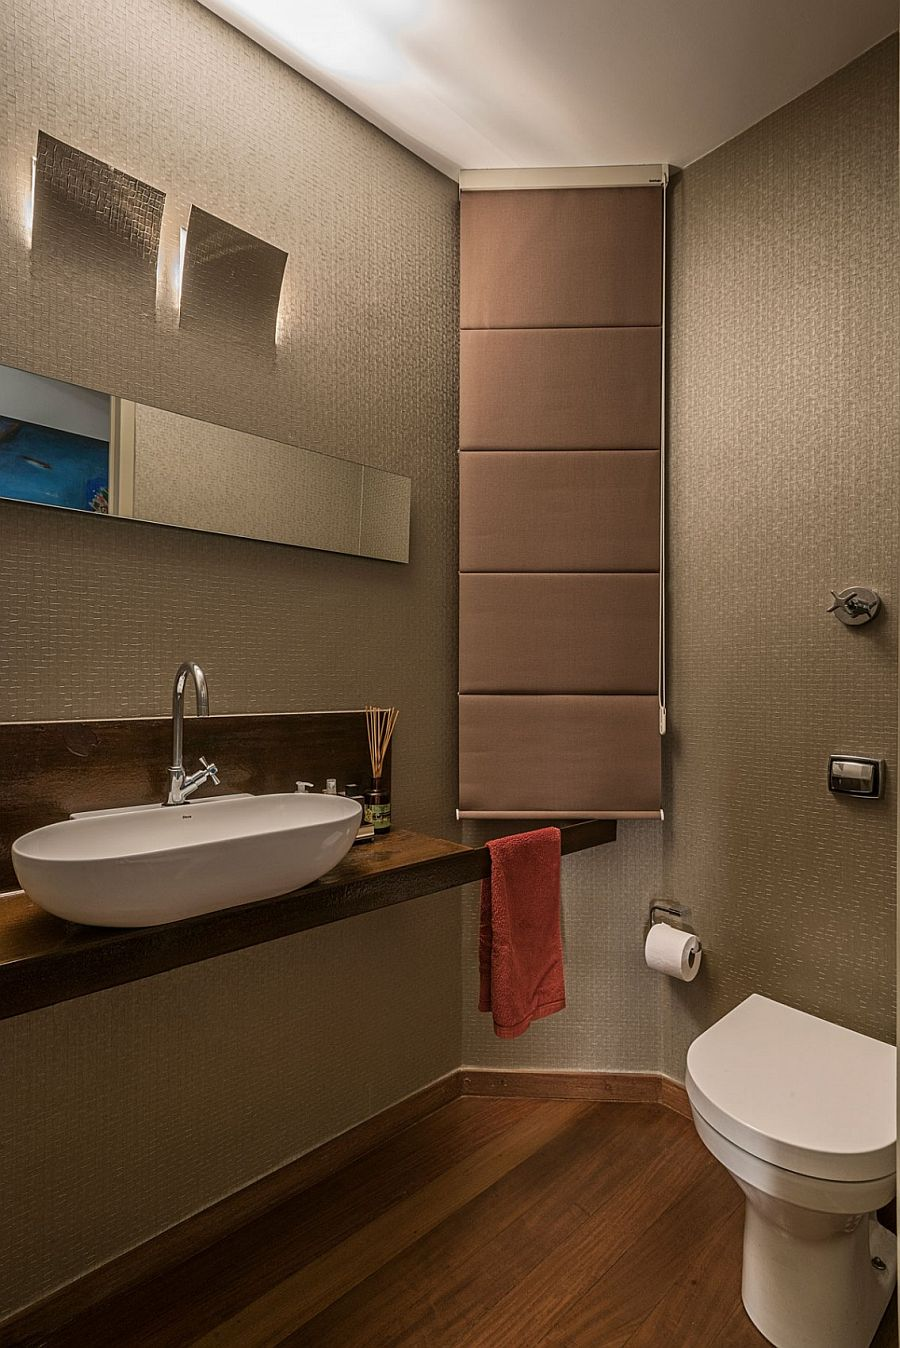 Powder room on the first level is kept simple and modern with minimal color